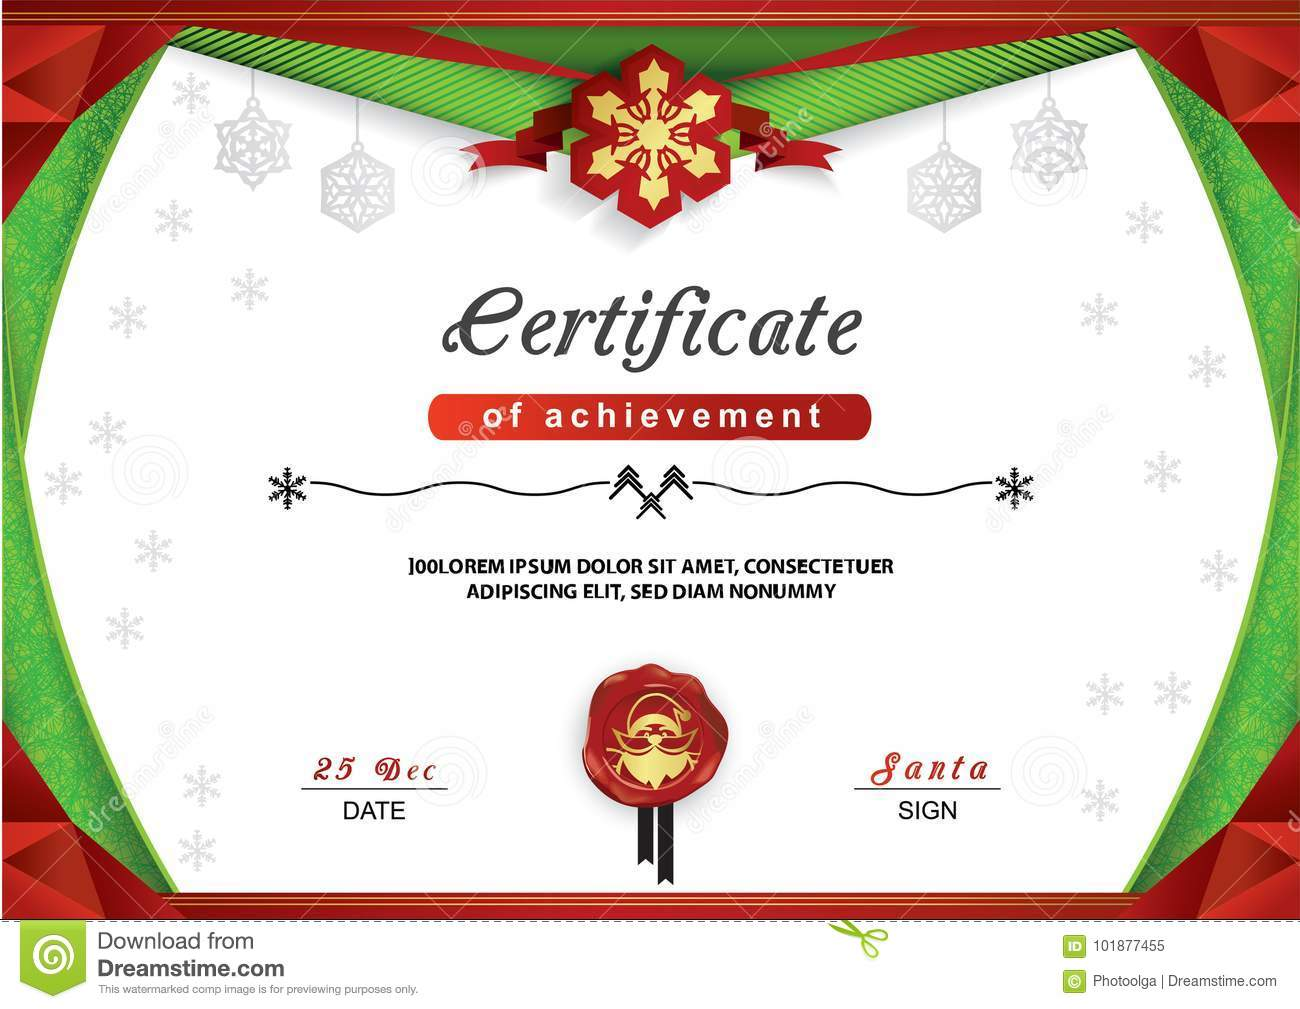 Christmas Certificate Green Red Border And Snowflake Emblem Gold